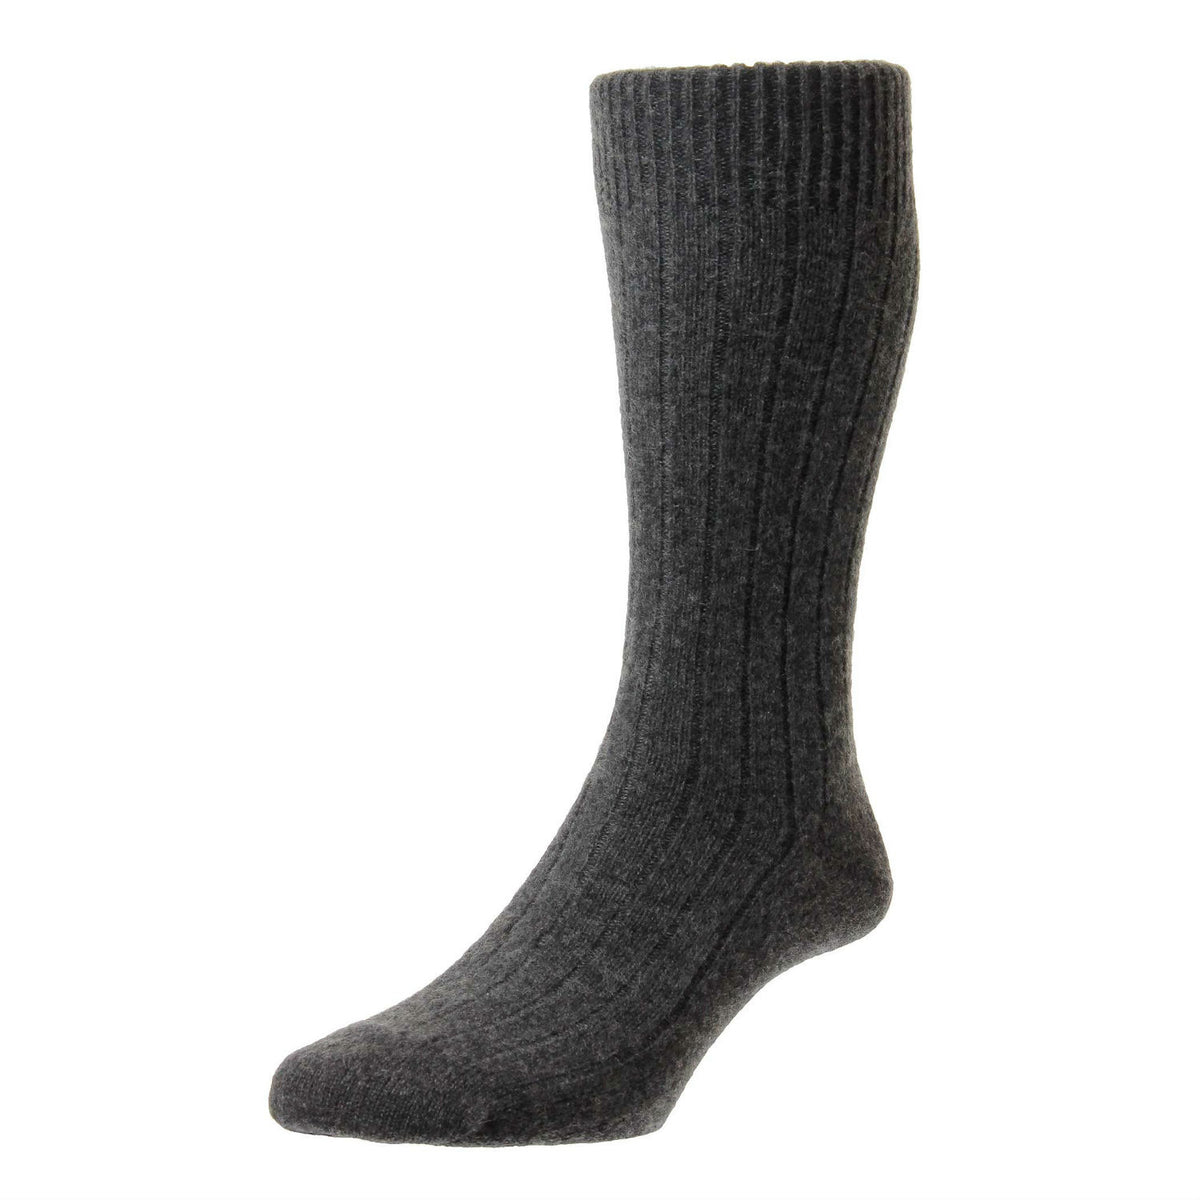 Charcoal Grey | Mens Cashmere Socks | Made in England | Calf Length Sock | buy now at The Cashmere Choice London